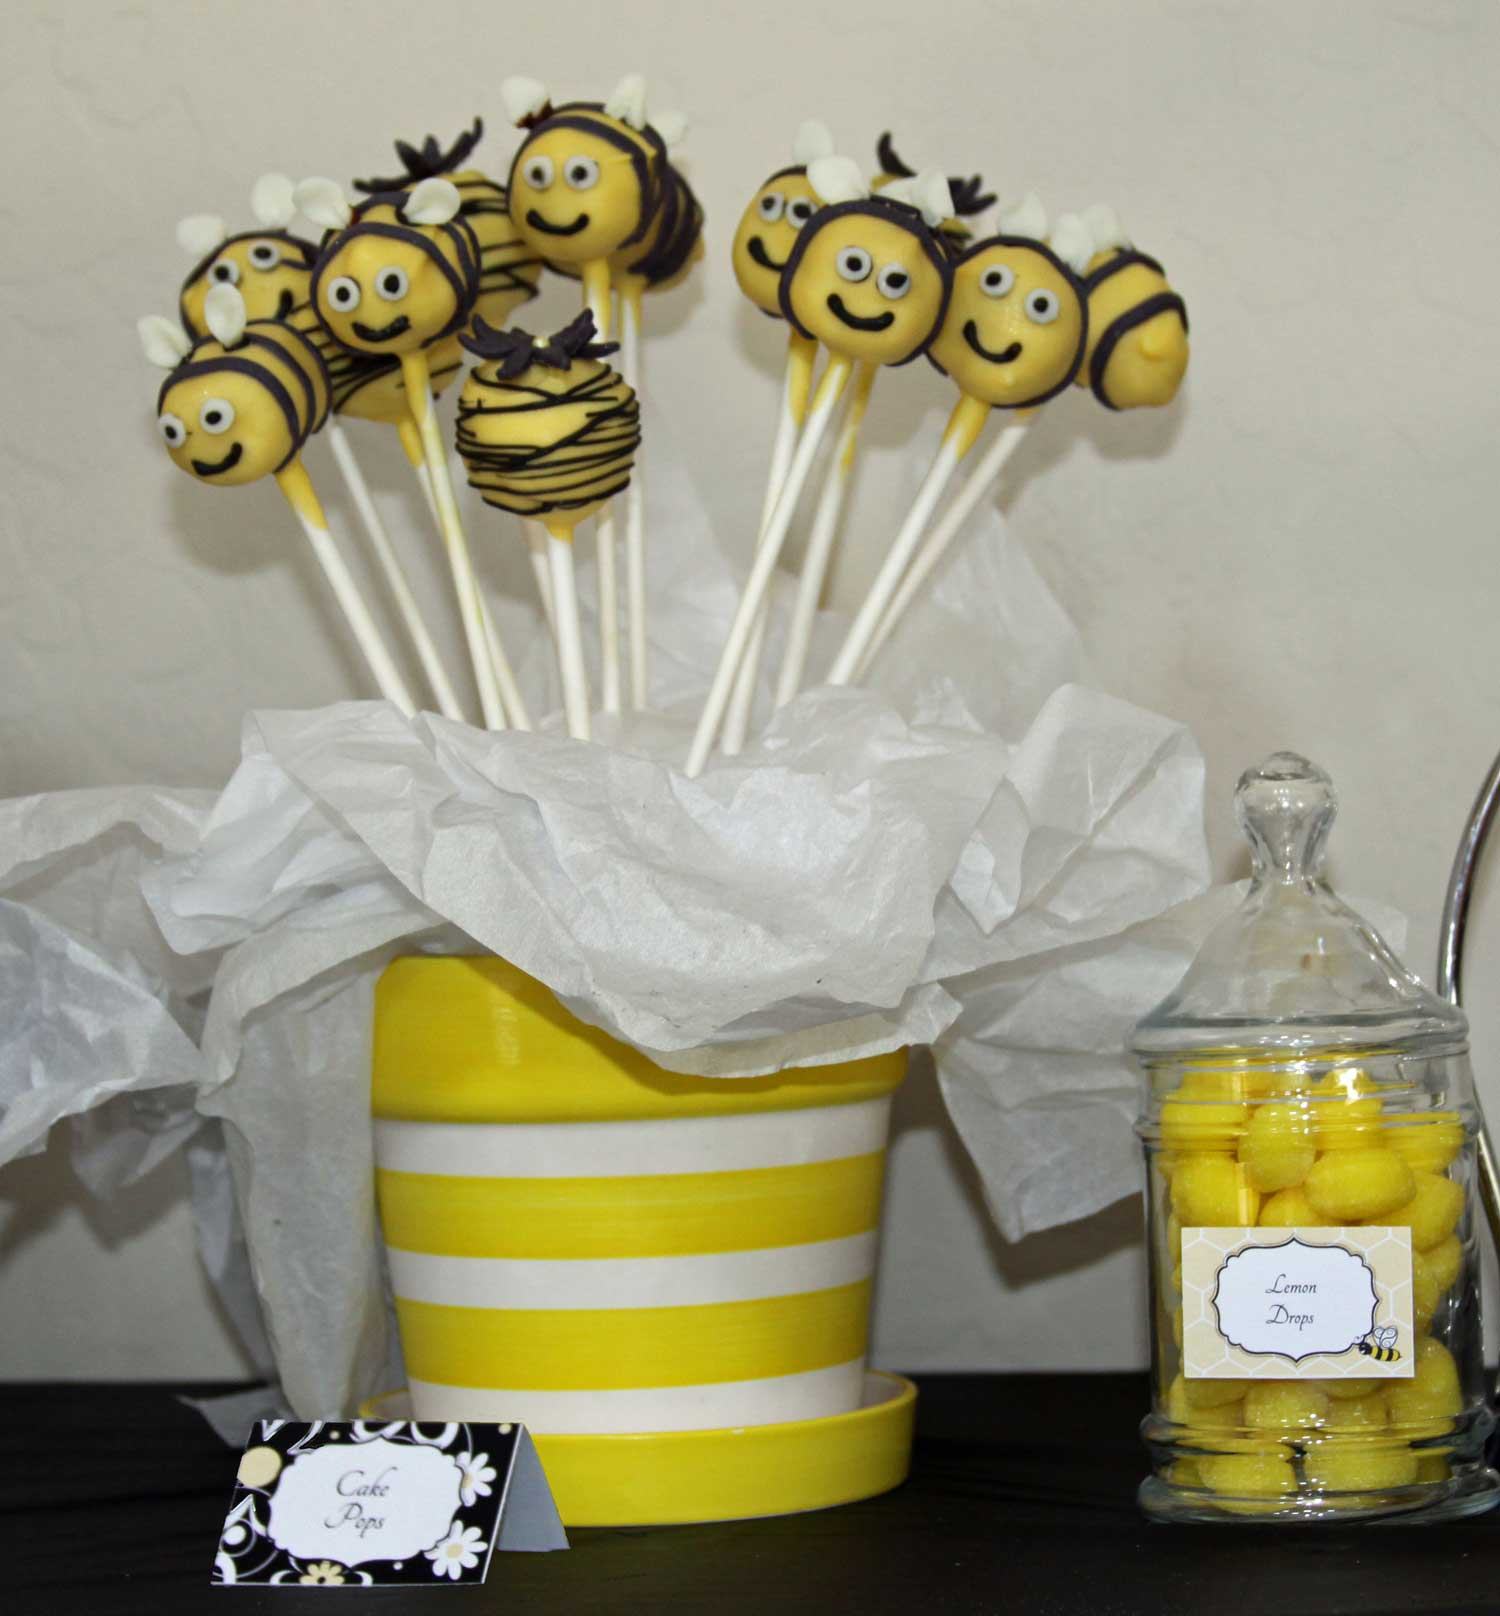 these bumble bee pops elicited squeals of glee from both children and